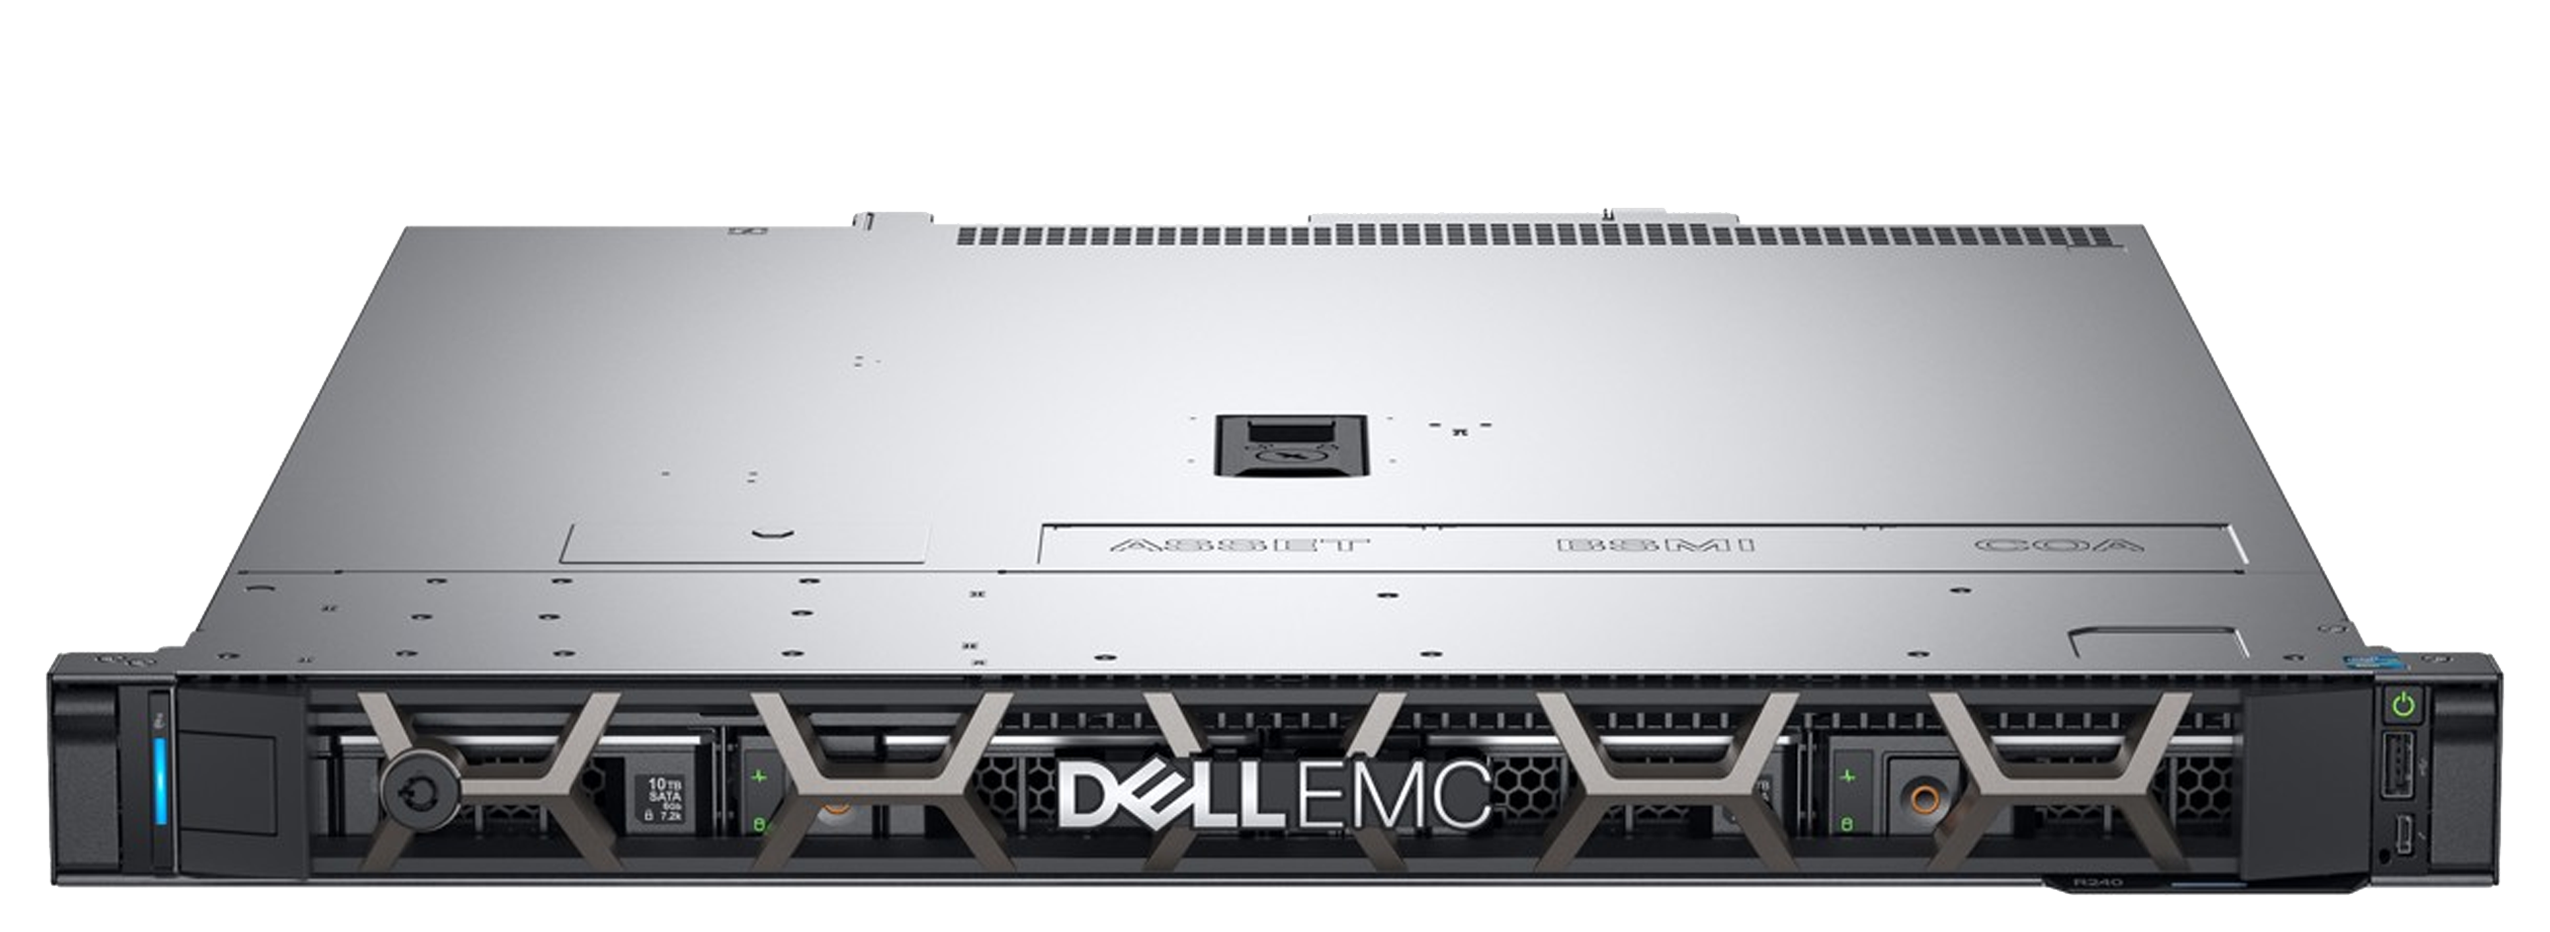 As an OEM Integration Partner and Dell OEM Titanium Partner, Build